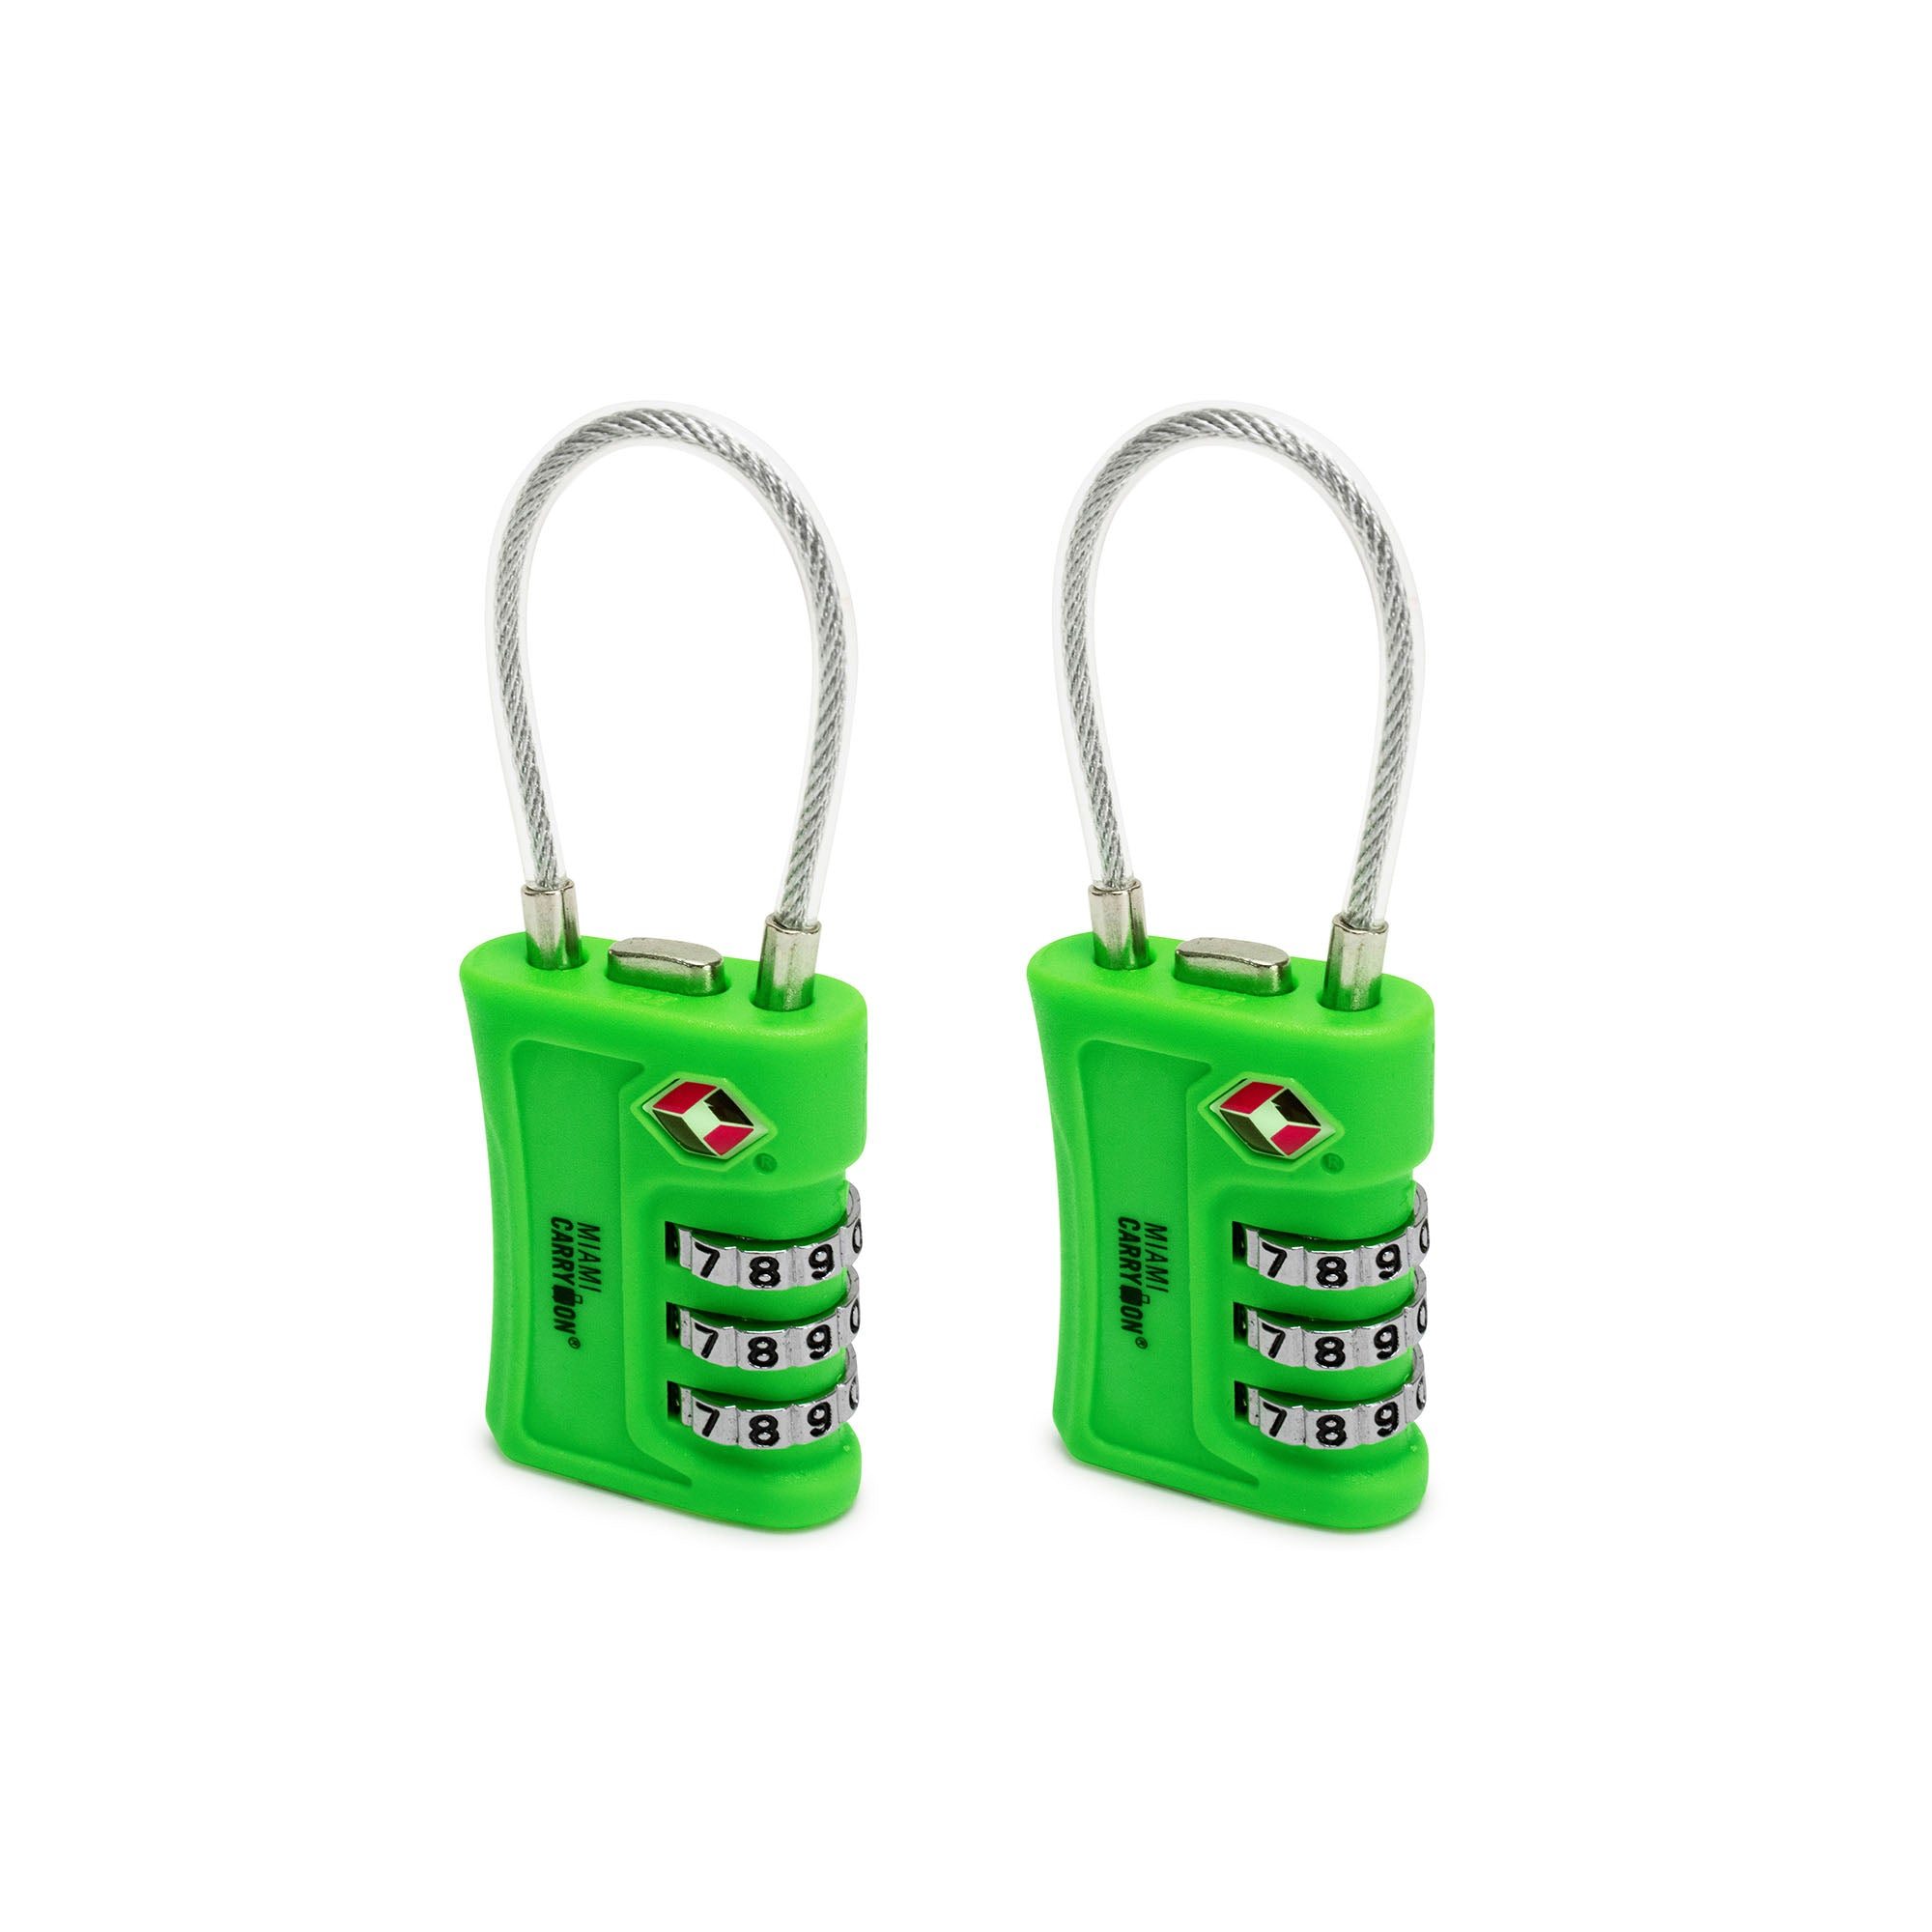 TSA Approved Cable Combination Padlock [VALUE SET] - Green / 2 Pack - Travellty